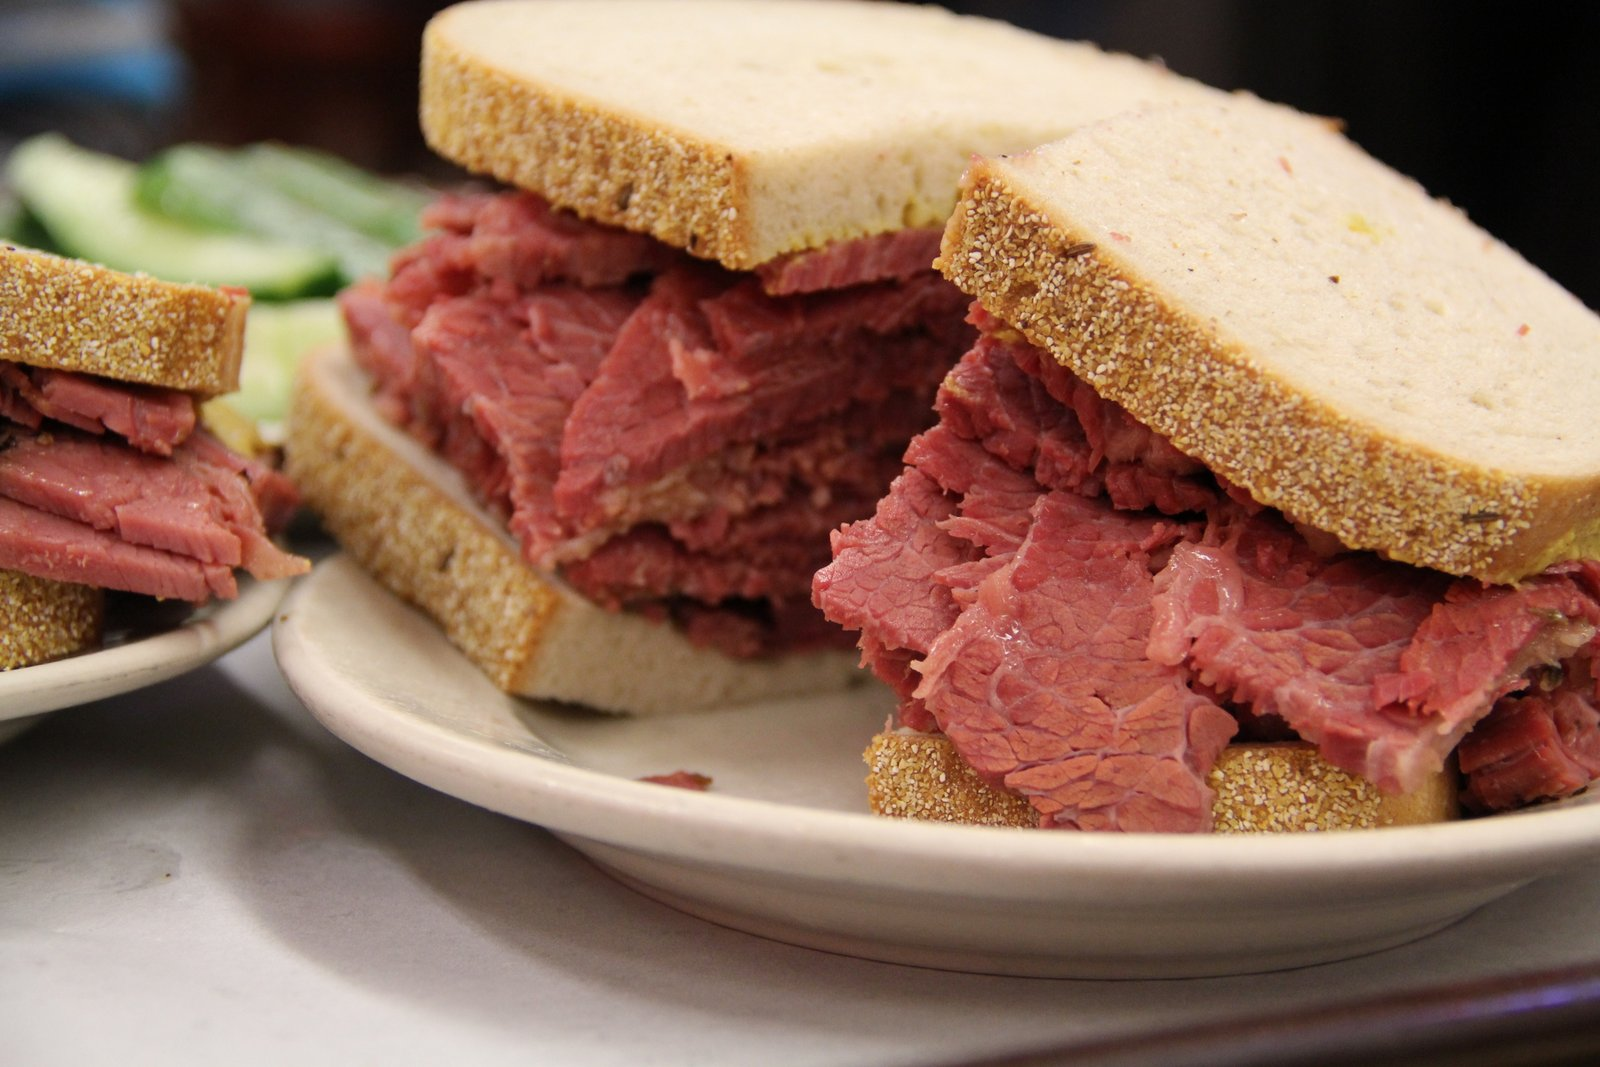 KATZS_DELICATESSEN_PASTRAMI_NEW_YORK_PHOTO_3485